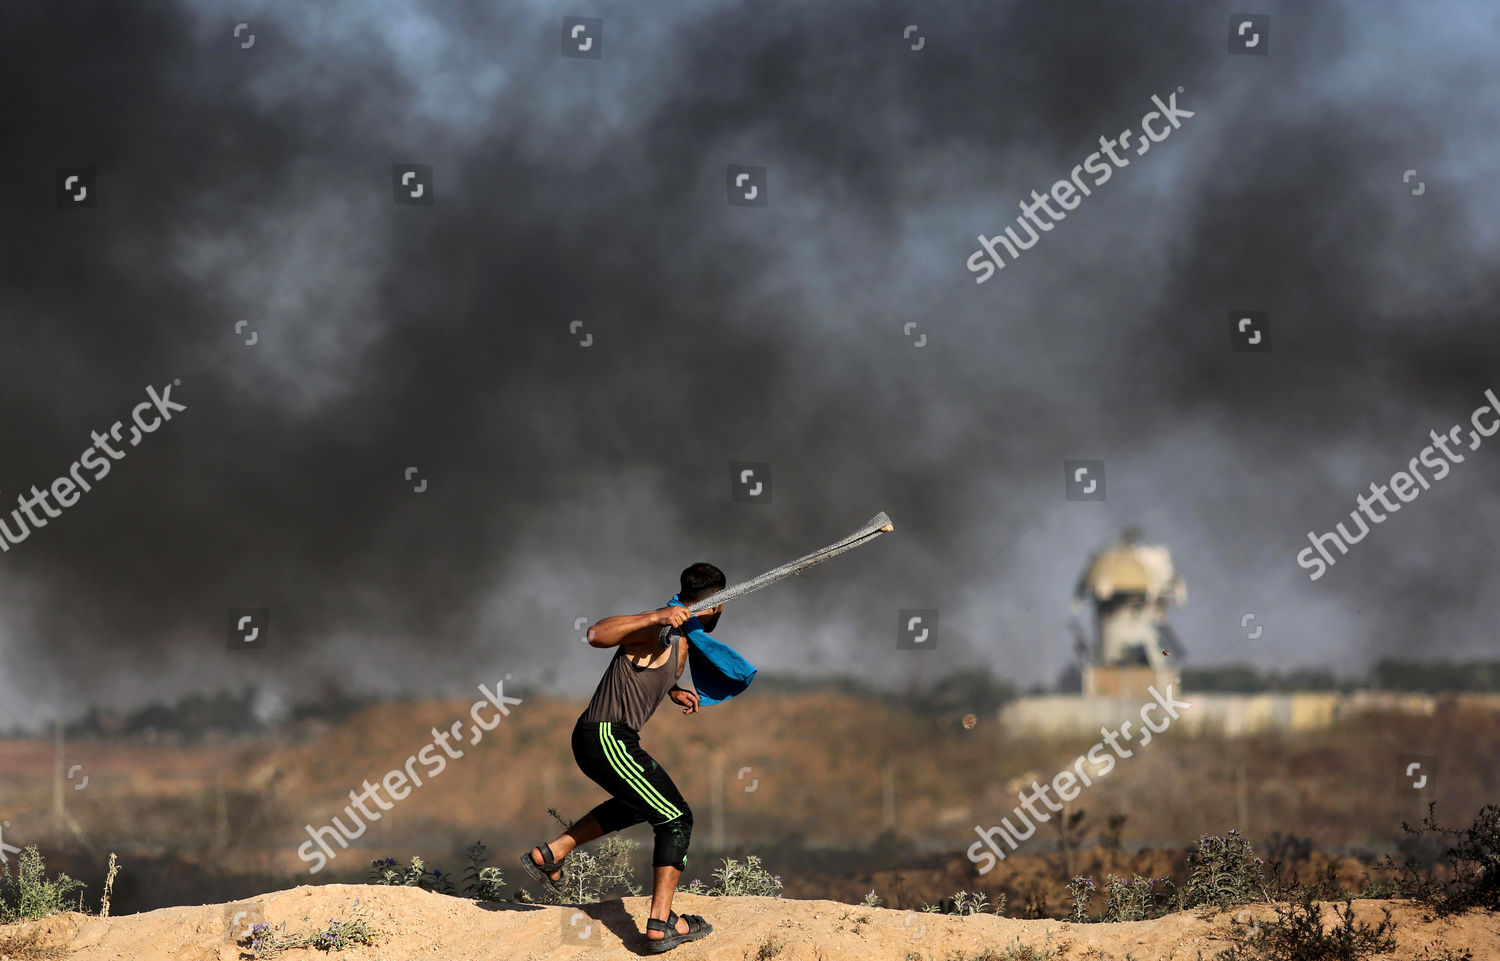 Palestinian protester uses slingshot hurl stones towards